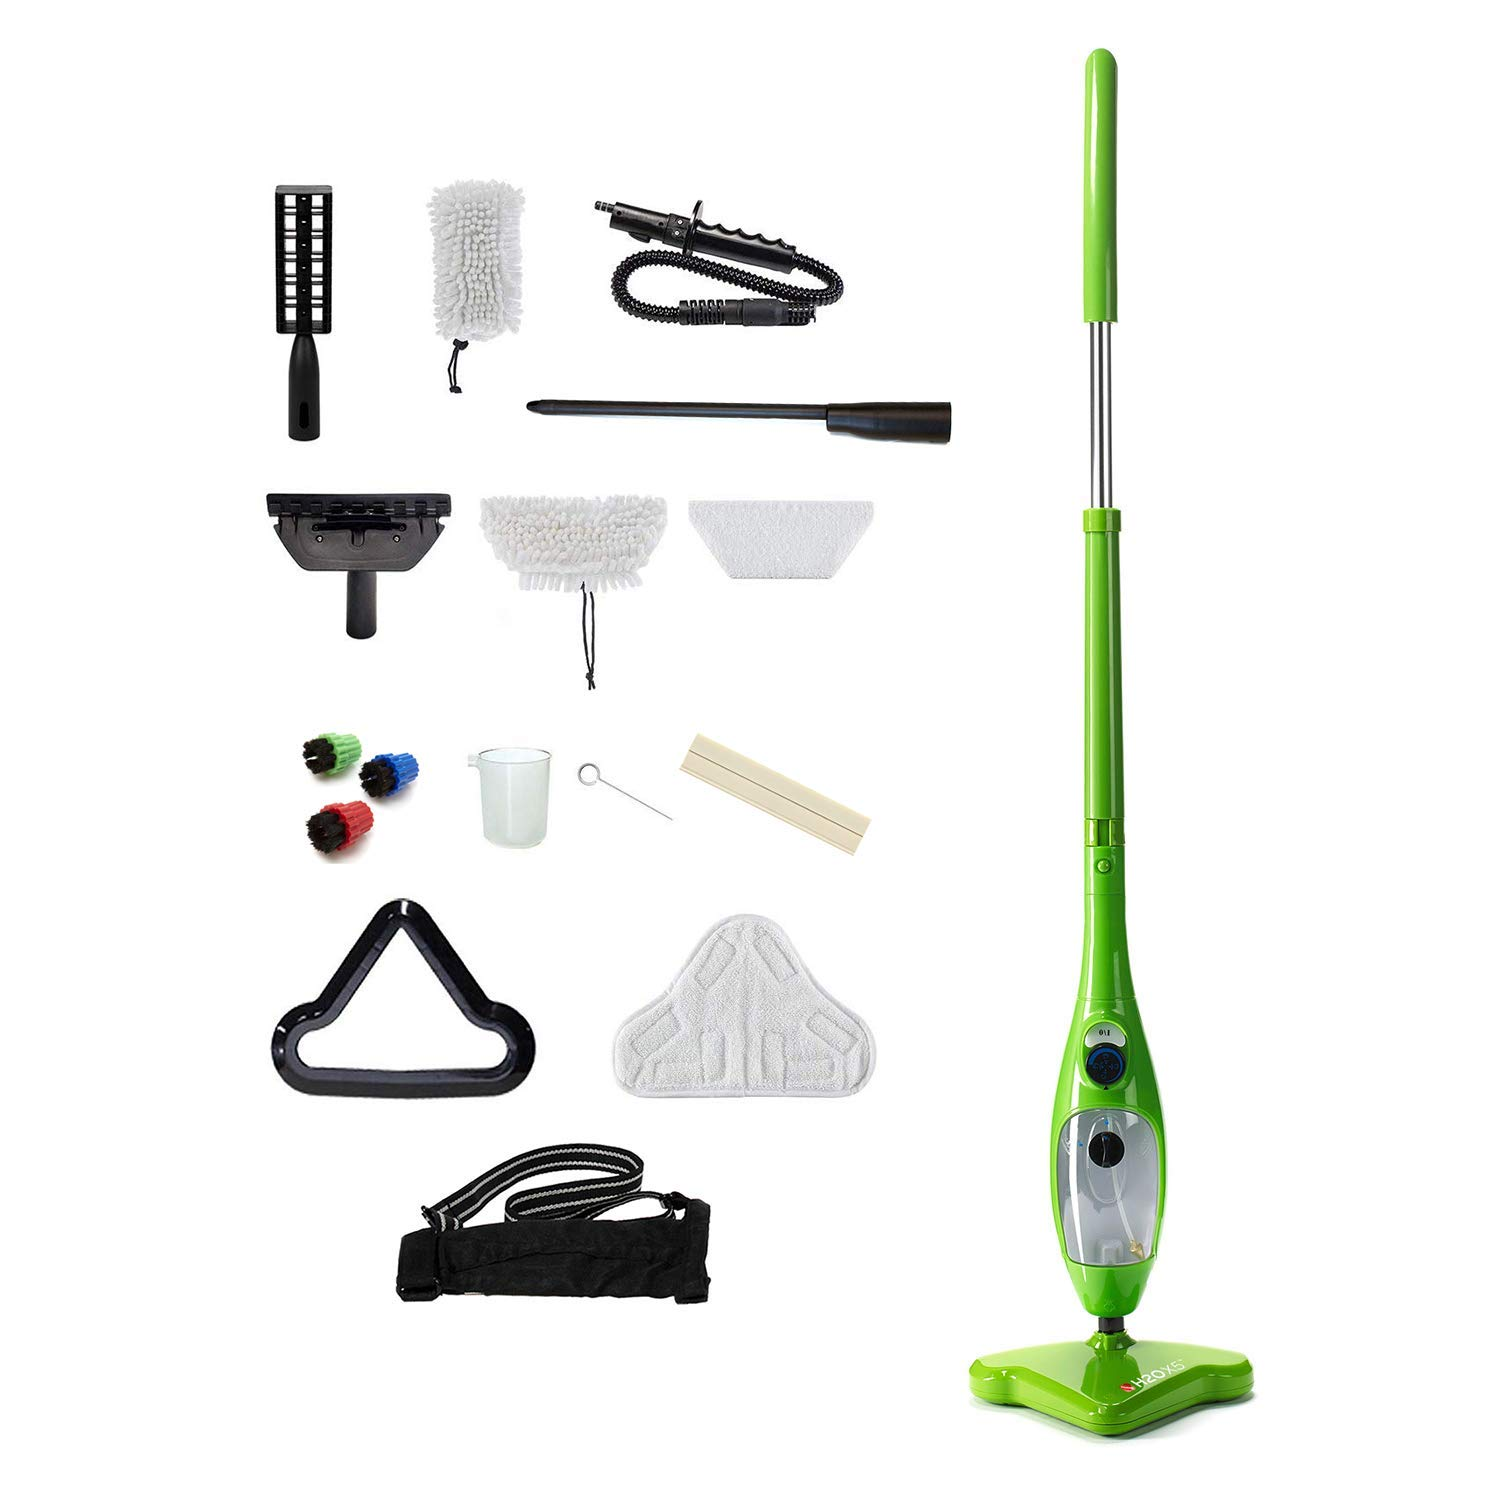 H2O Mop X5 Elite - 5 in 1 Steam Mop for Floors, Carpets, Hand-Held Steamer, Window, Mirror and Glass Cleaner and Garment Steamer All in One!